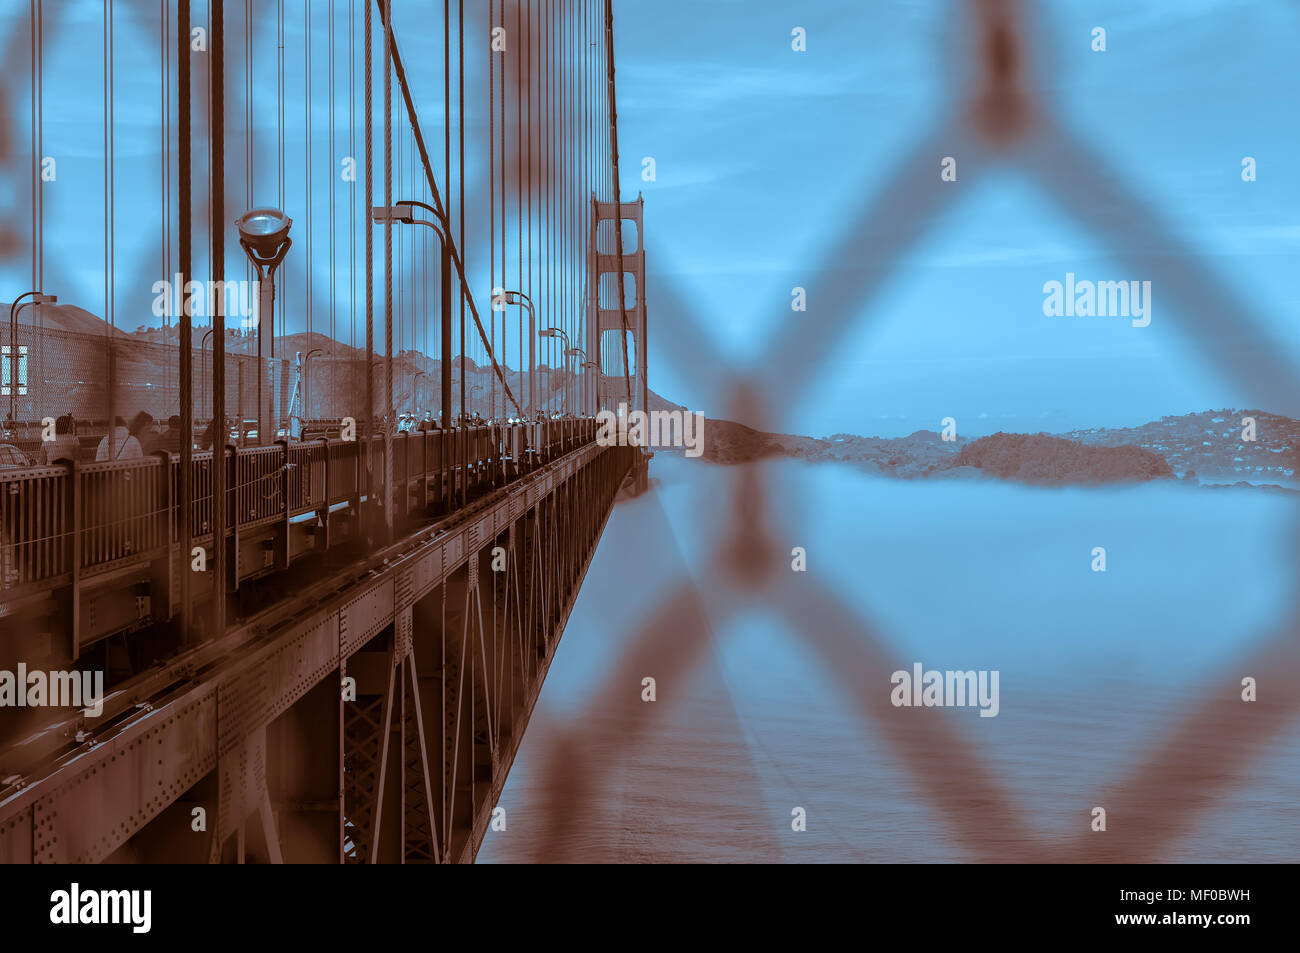 View of the Golden Gate Bridge, with the fog underneath, through the safety fence, San Francisco, California, United States. - Stock Image